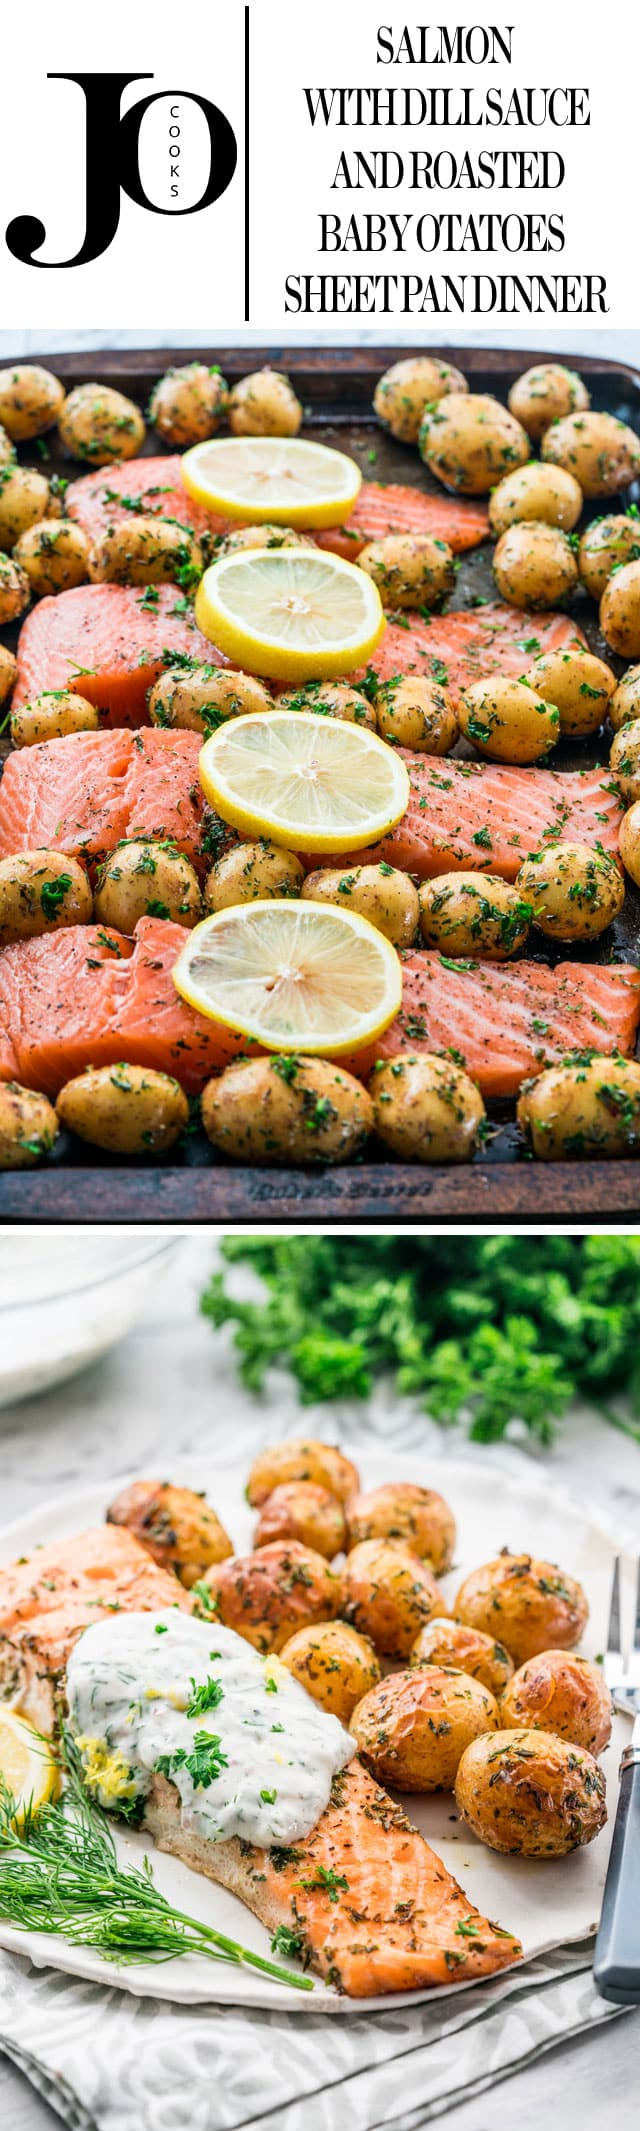 Sheet pan dinners were never easier than this Salmon with Dill Sauce and Roasted Baby Potatoes. Dinner in 30 minutes that's healthy, minimum prep time required and easy cleanup. www.jocooks.com #sheetpandinner